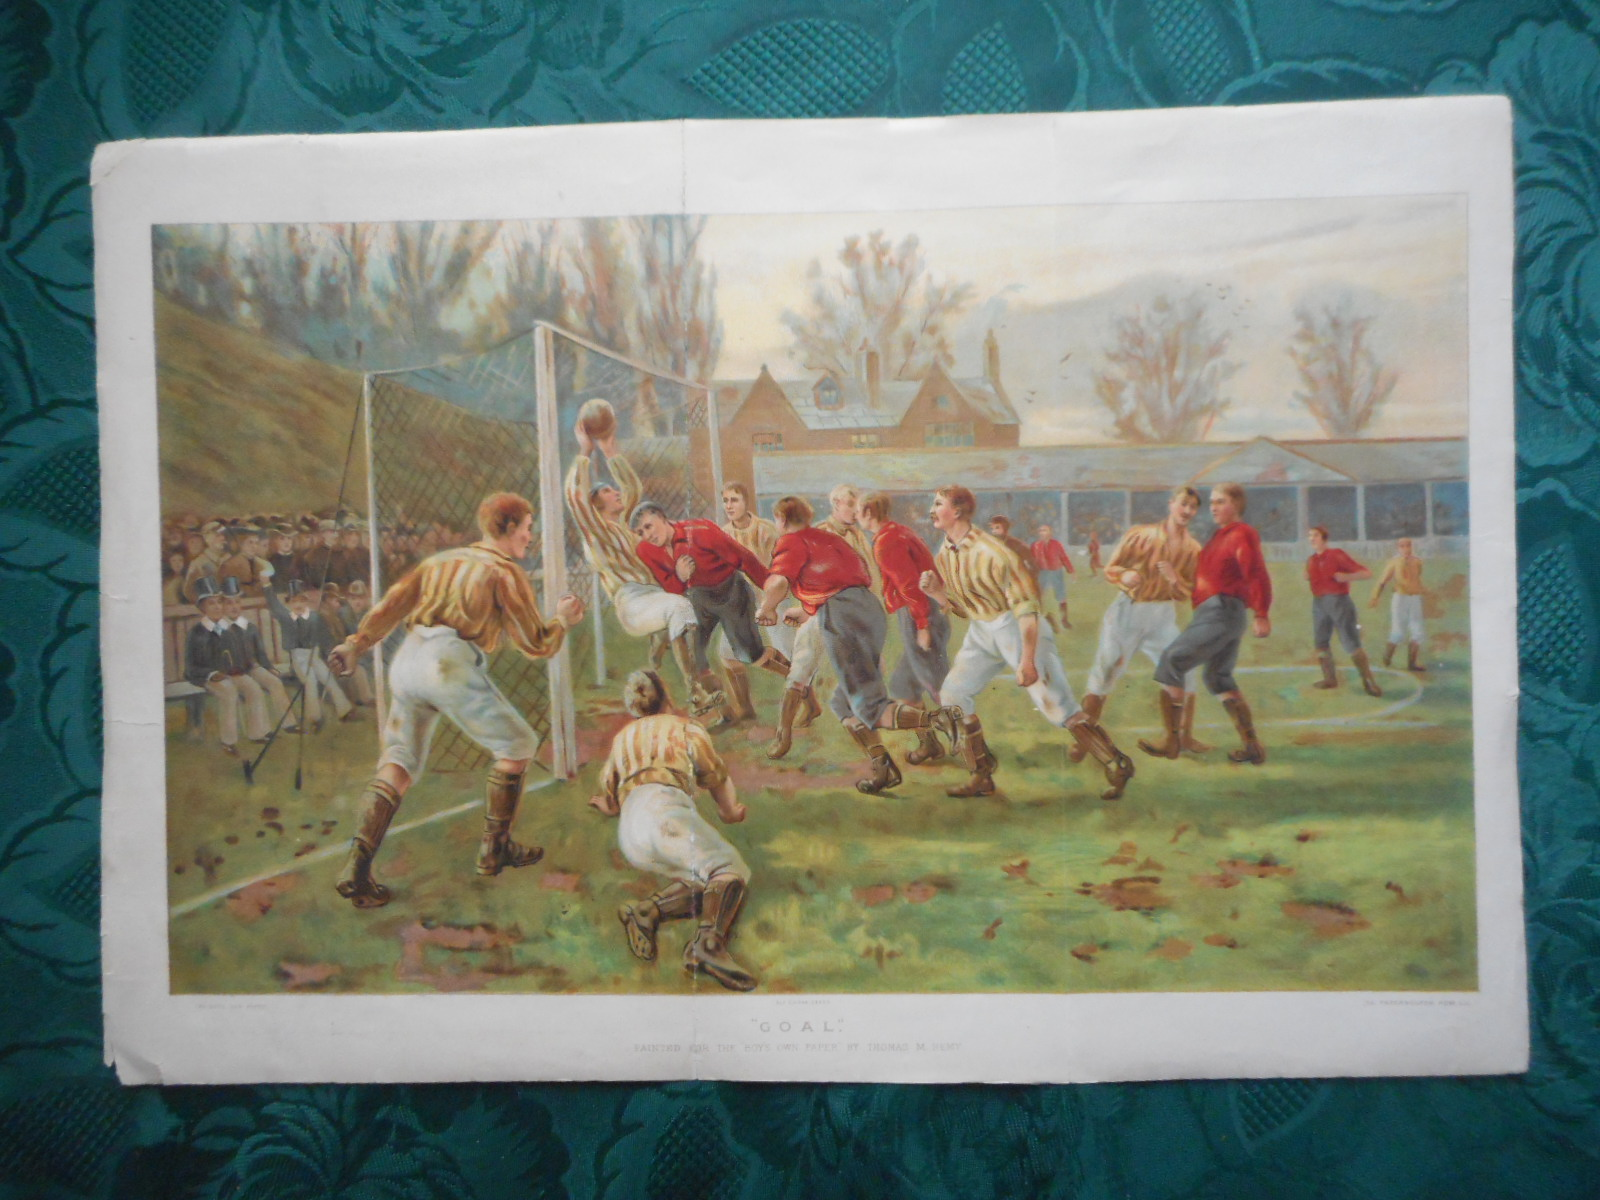 "GOAL. Football Game. Large Antique Colour Plate from 'The Boys Own Paper' 1897. 17"" X 11.6"" (Including Top, Side and Bottom Margins)"